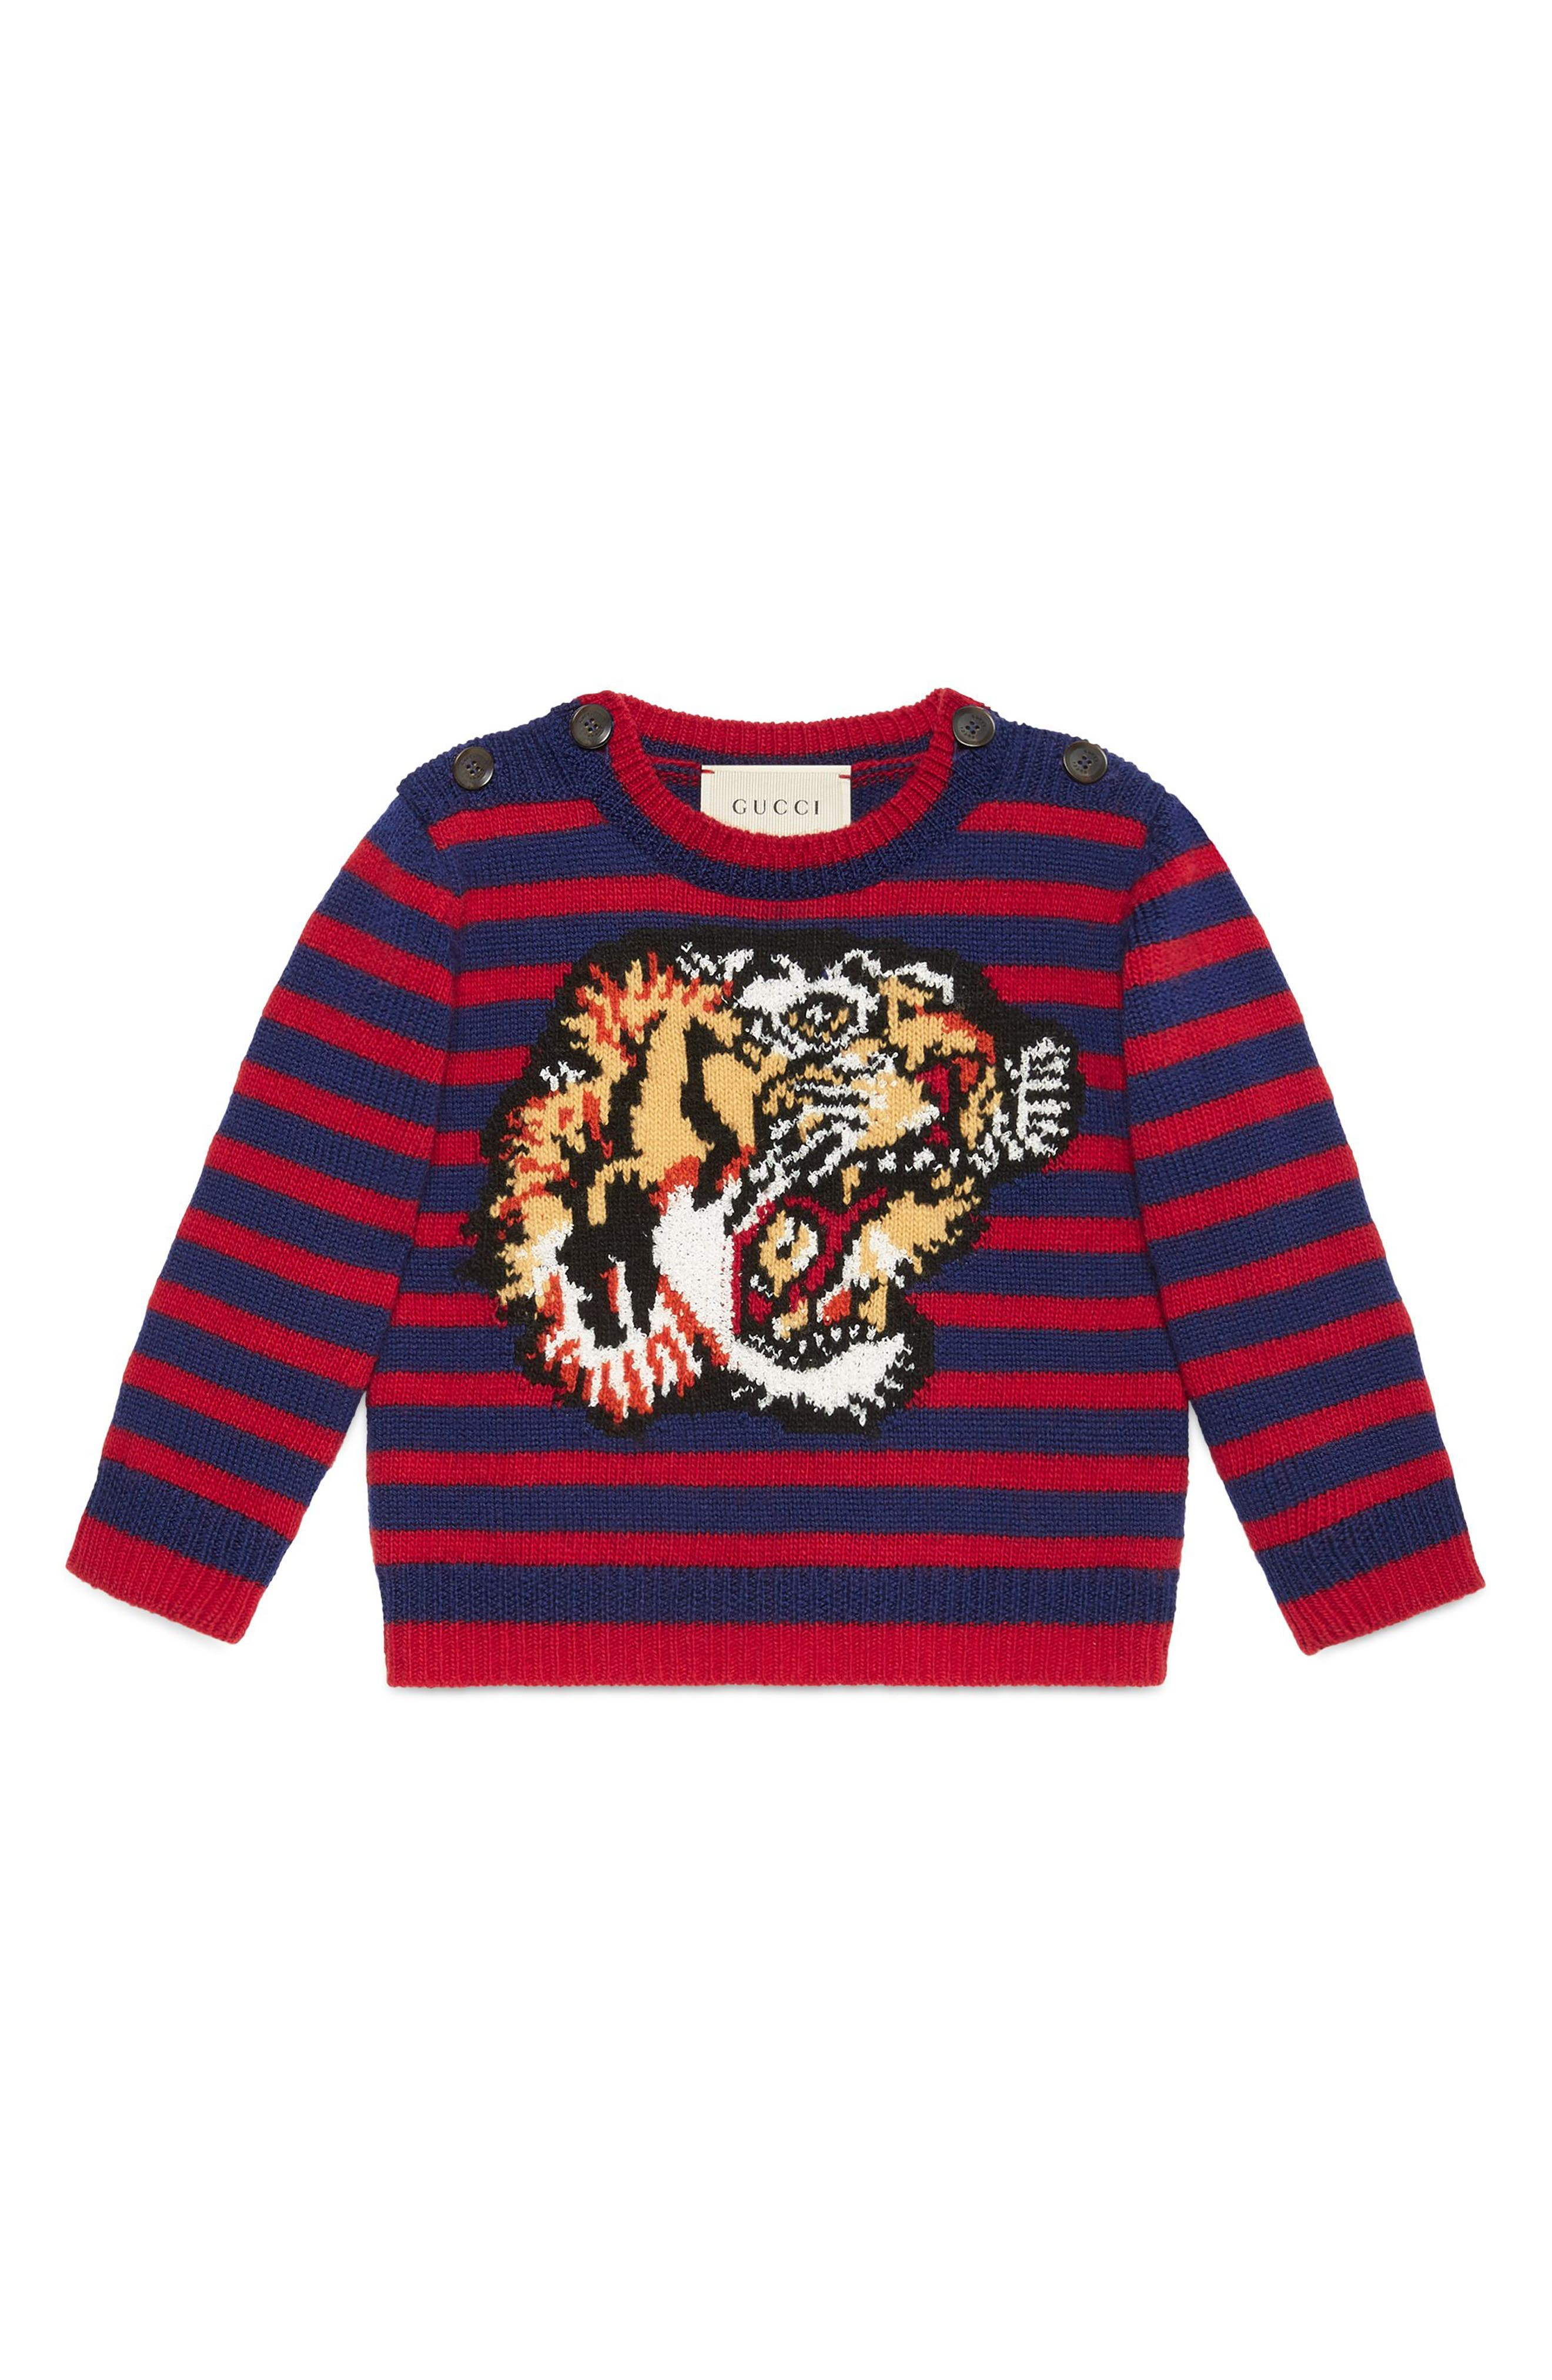 Gucci Intarsia Tiger Wool Sweater (Baby)